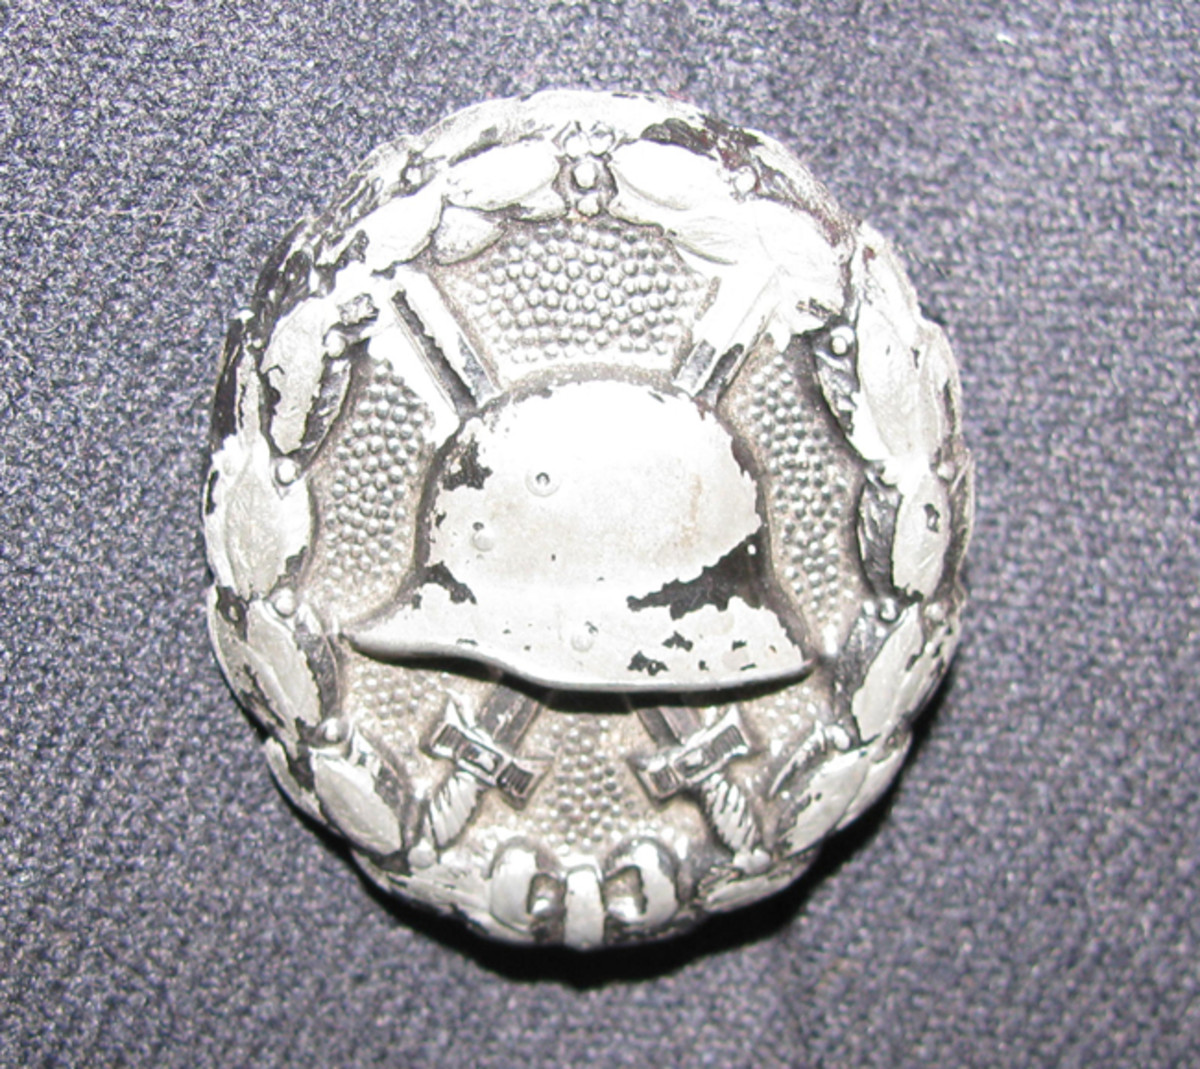 A well-worn Imperial 3rd class wound badge was worn on the left panel of a paramilitary uniform.